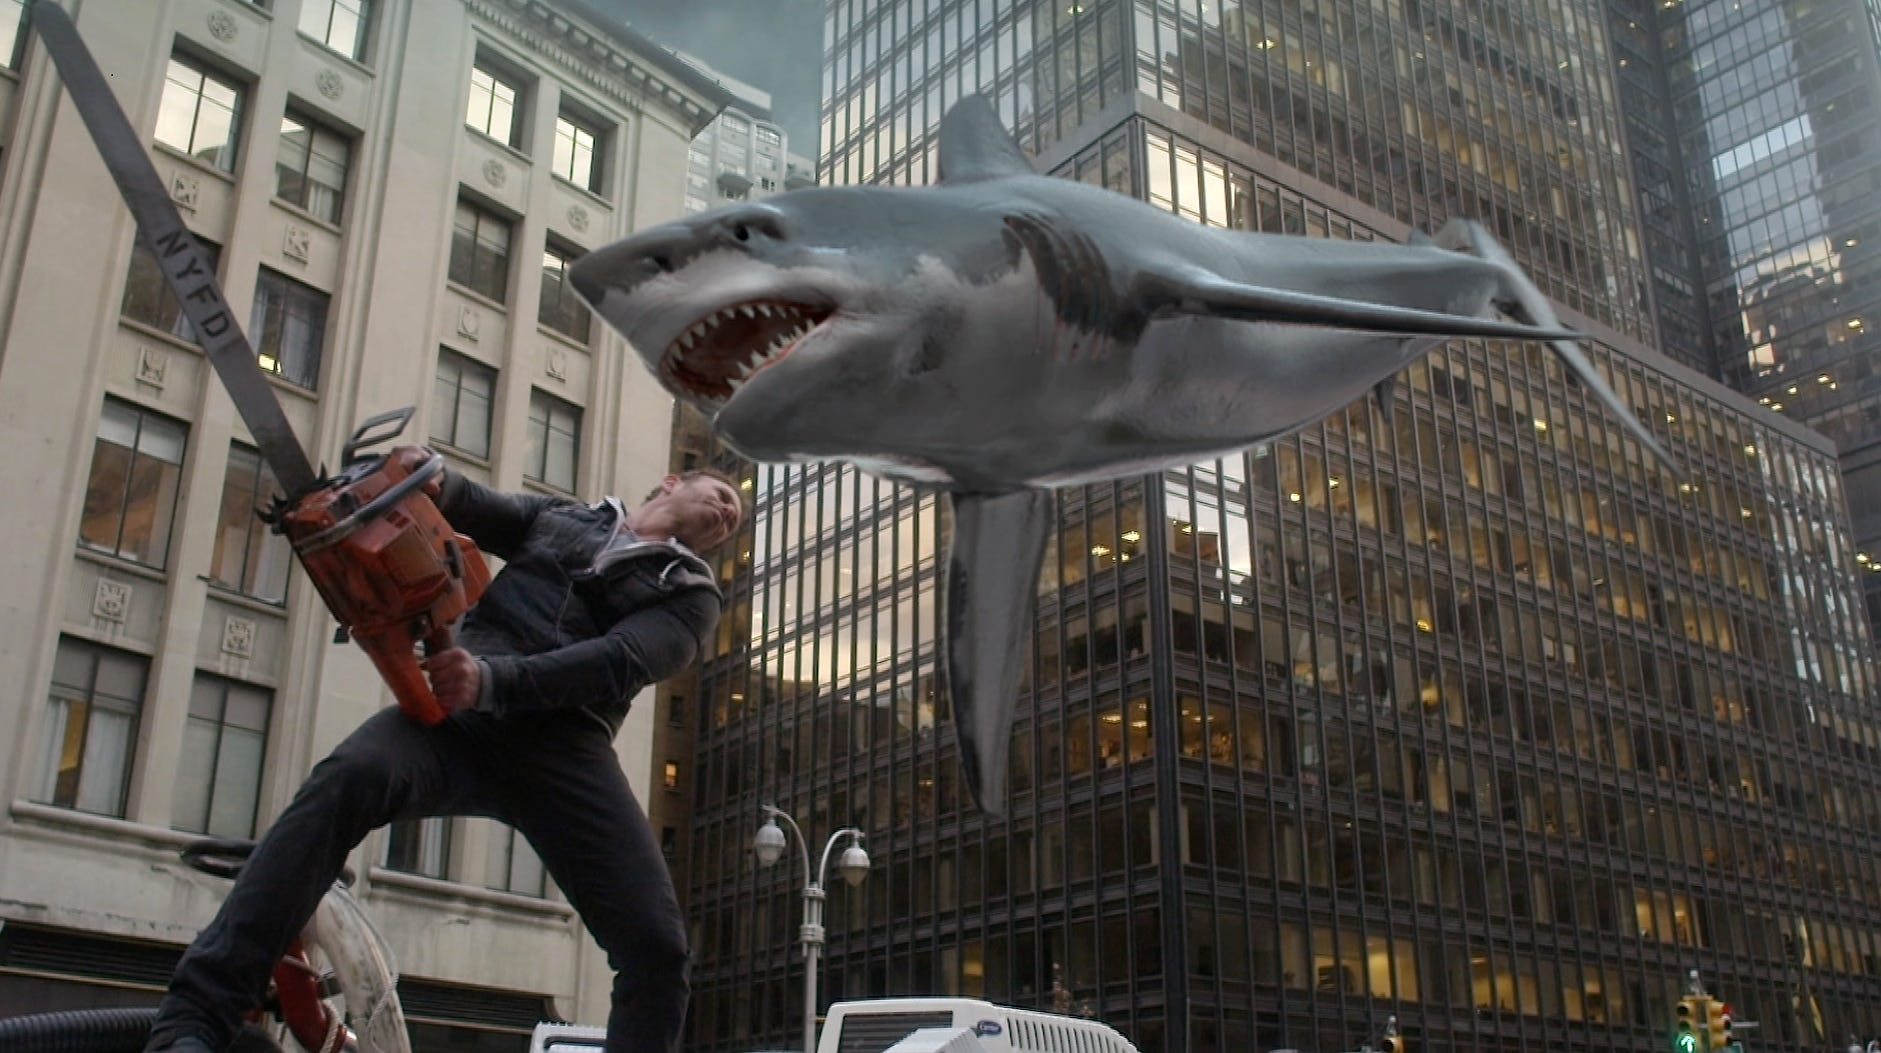 Sharknado': Looking back at best, worst moments before Syfy's final movie